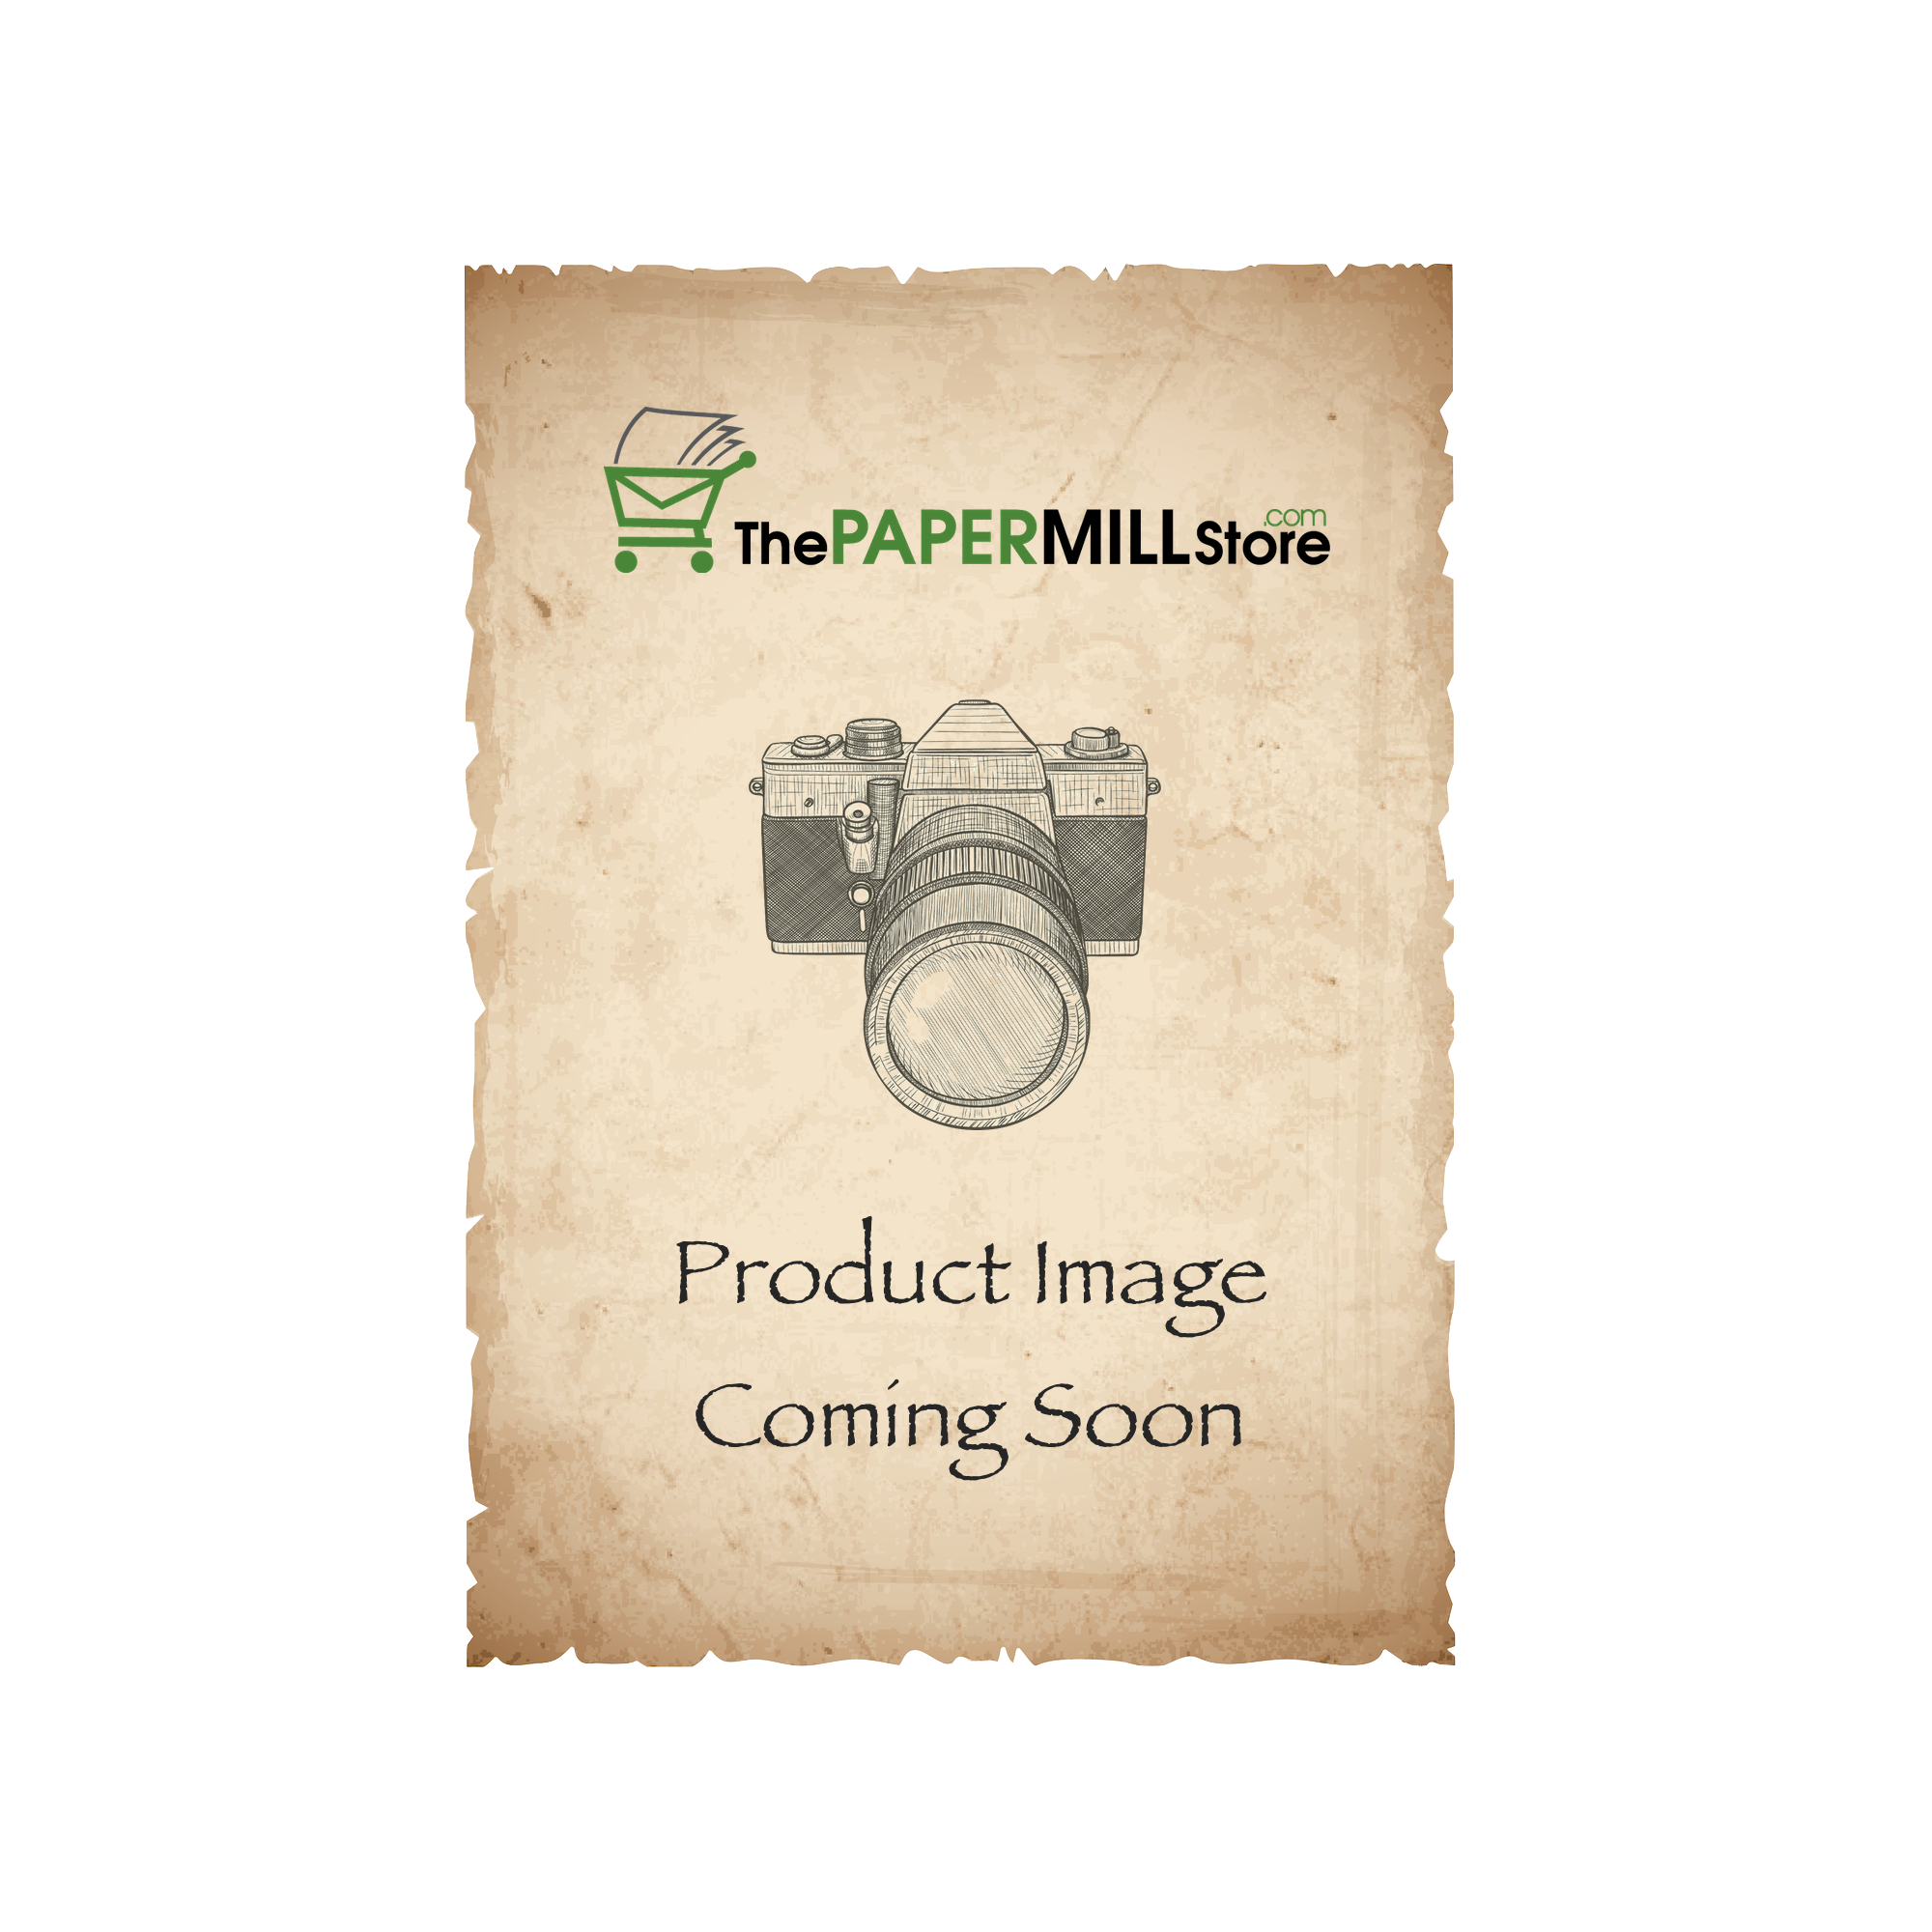 Buy Loop Feltmark Chili Card Stock - 26 x 40 in 110 lb Cover Feltmark  50% Recycled 250 per Carton at The Paper Mill Store .com